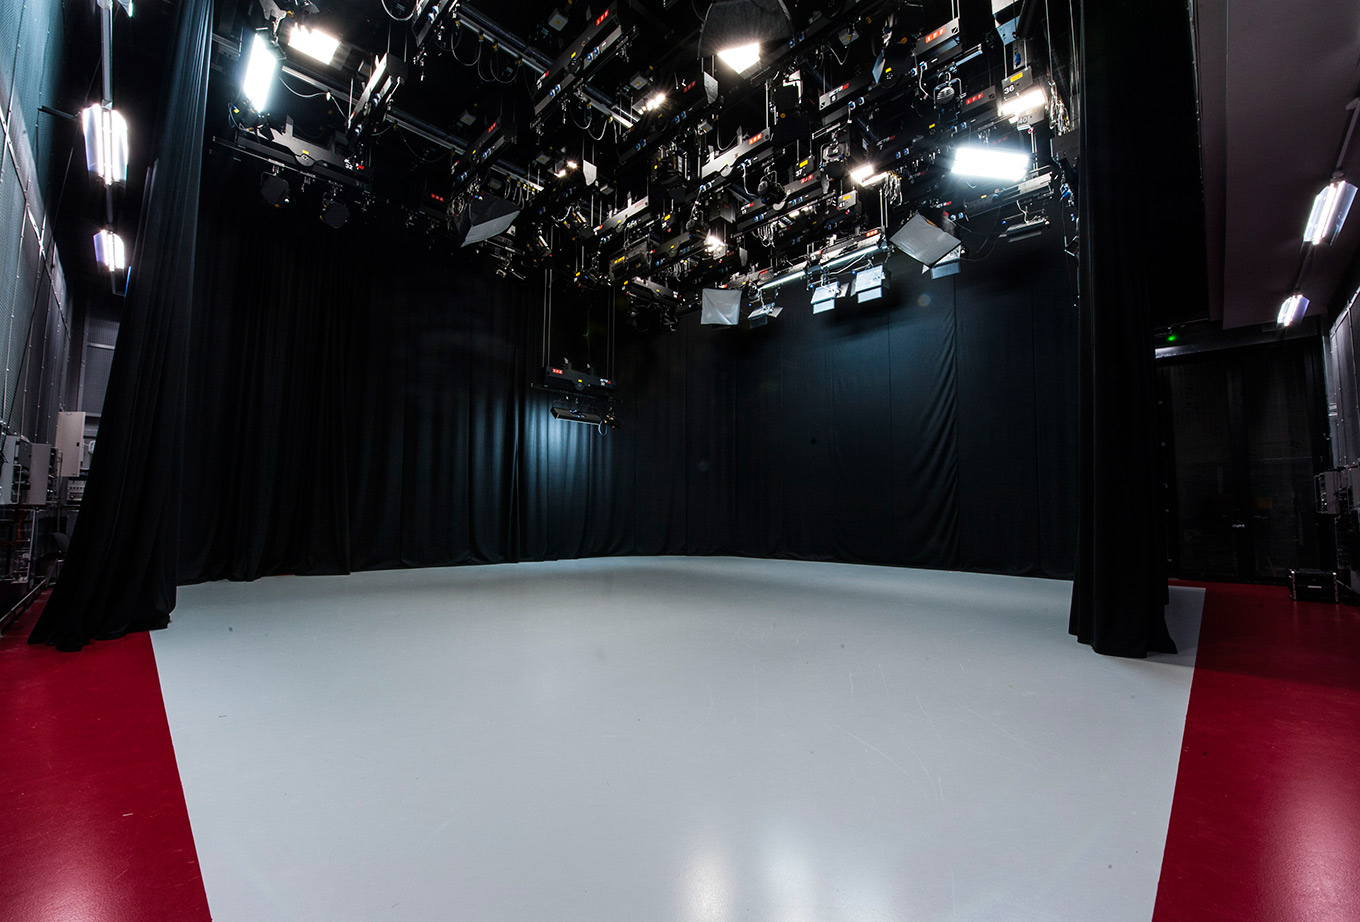 Tv Studio Lighting Grid Height - lighting.xcyyxh.com